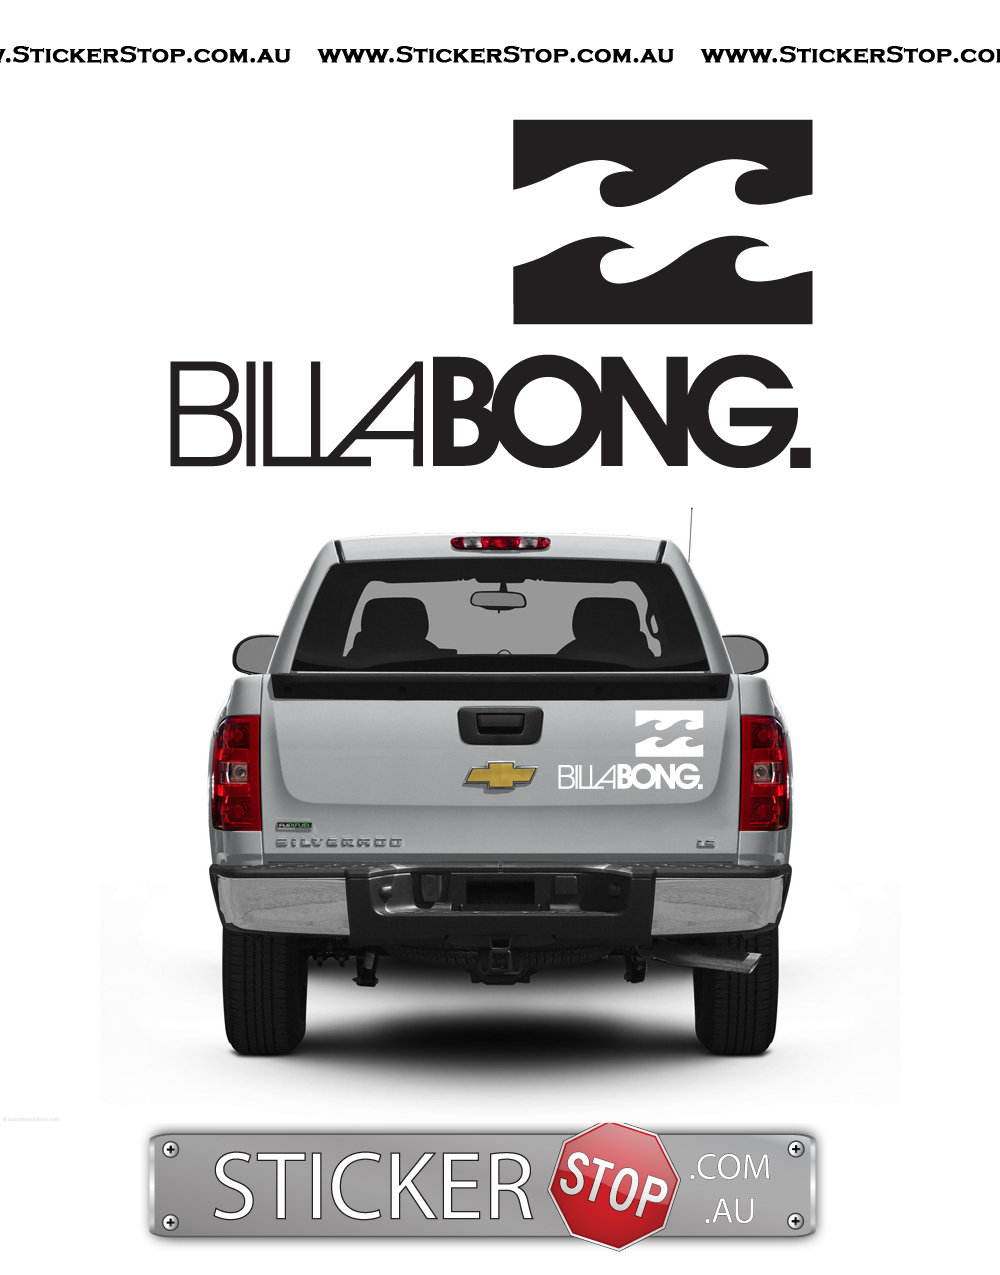 Billabong Sticker (Current)